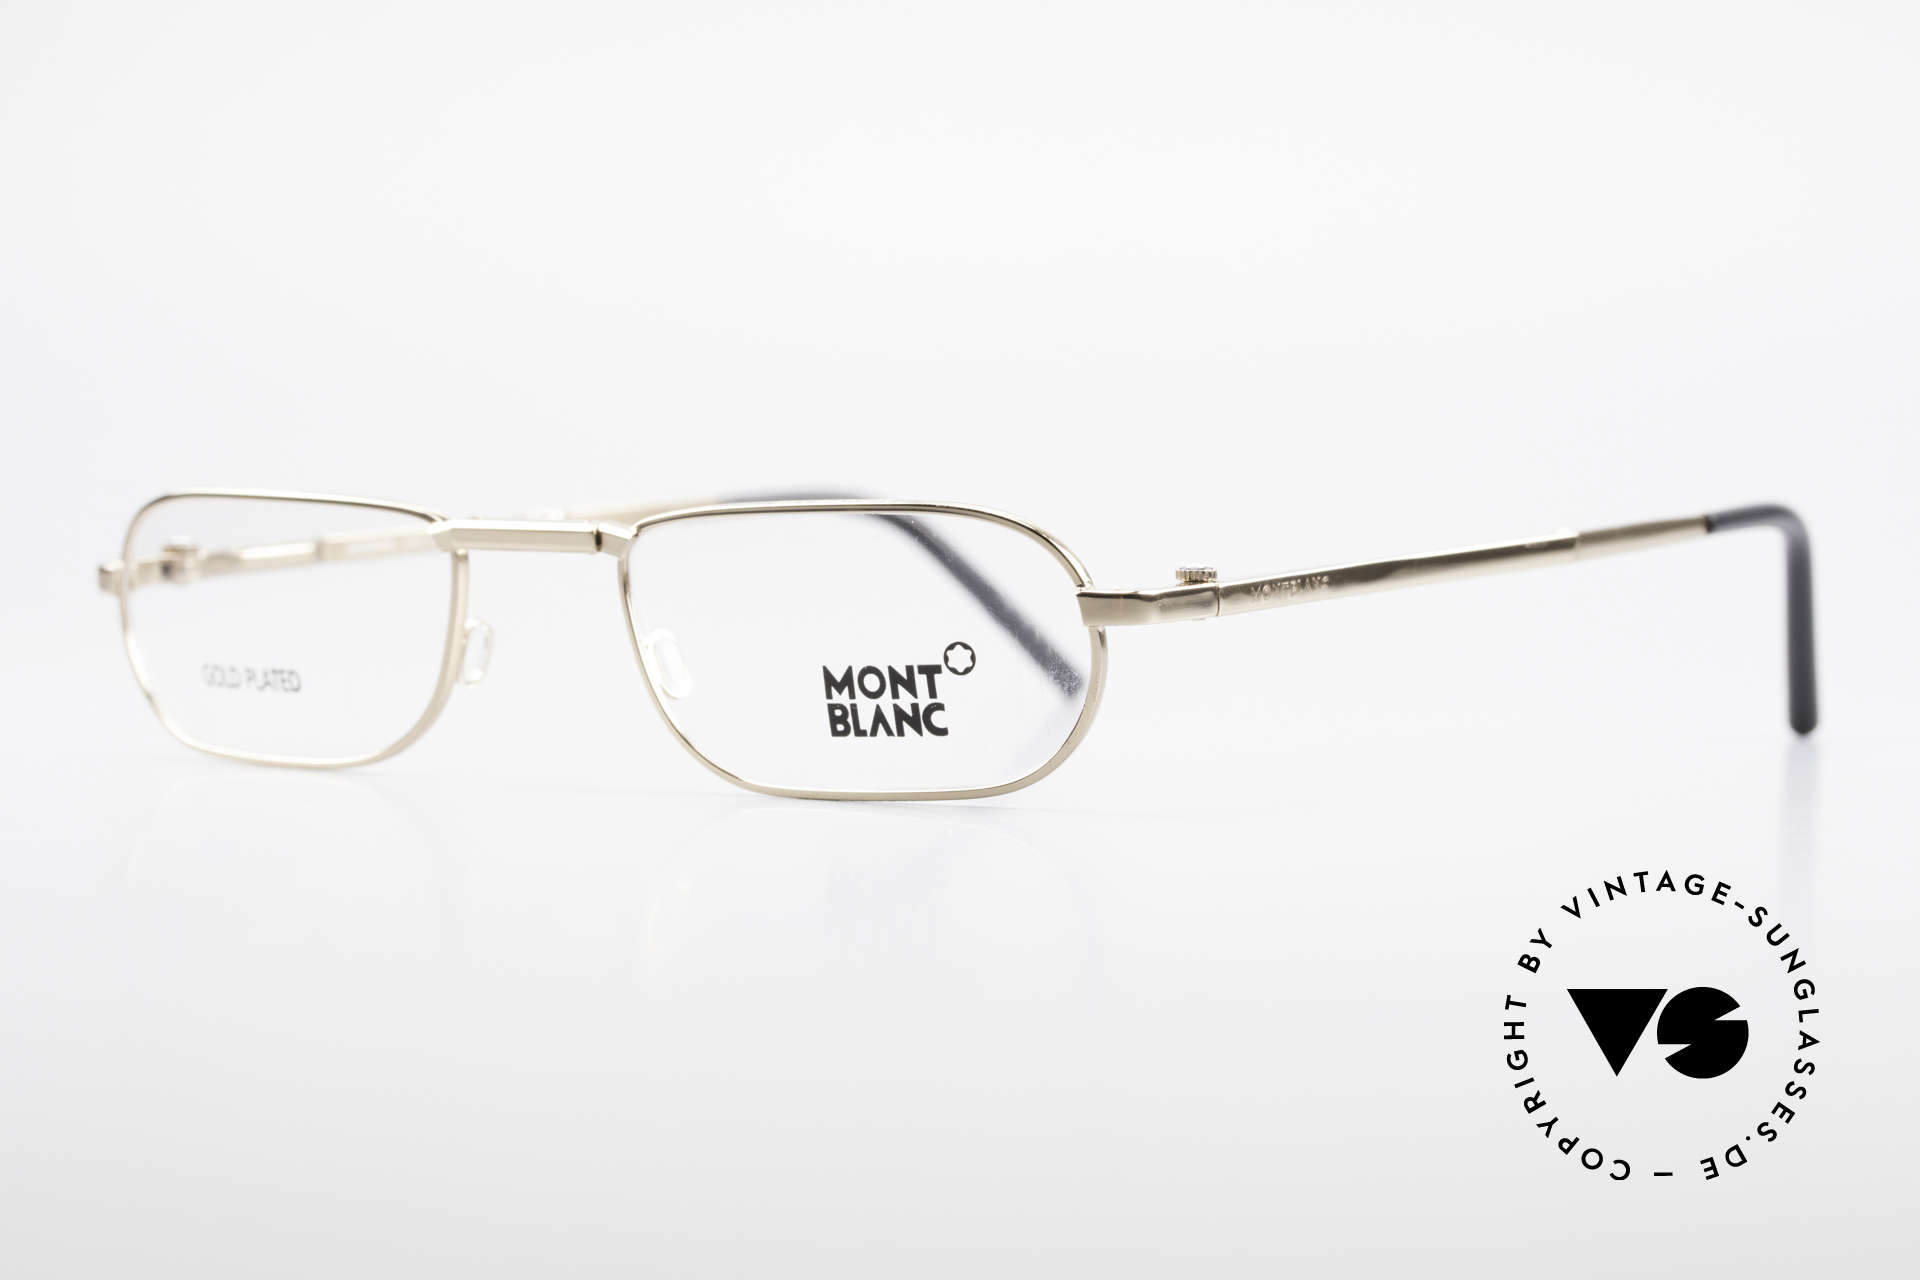 Montblanc MB30 Folding Gold Plated Luxury Eyeglasses, lightweight (18 gram only), very pleasant to wear!, Made for Men